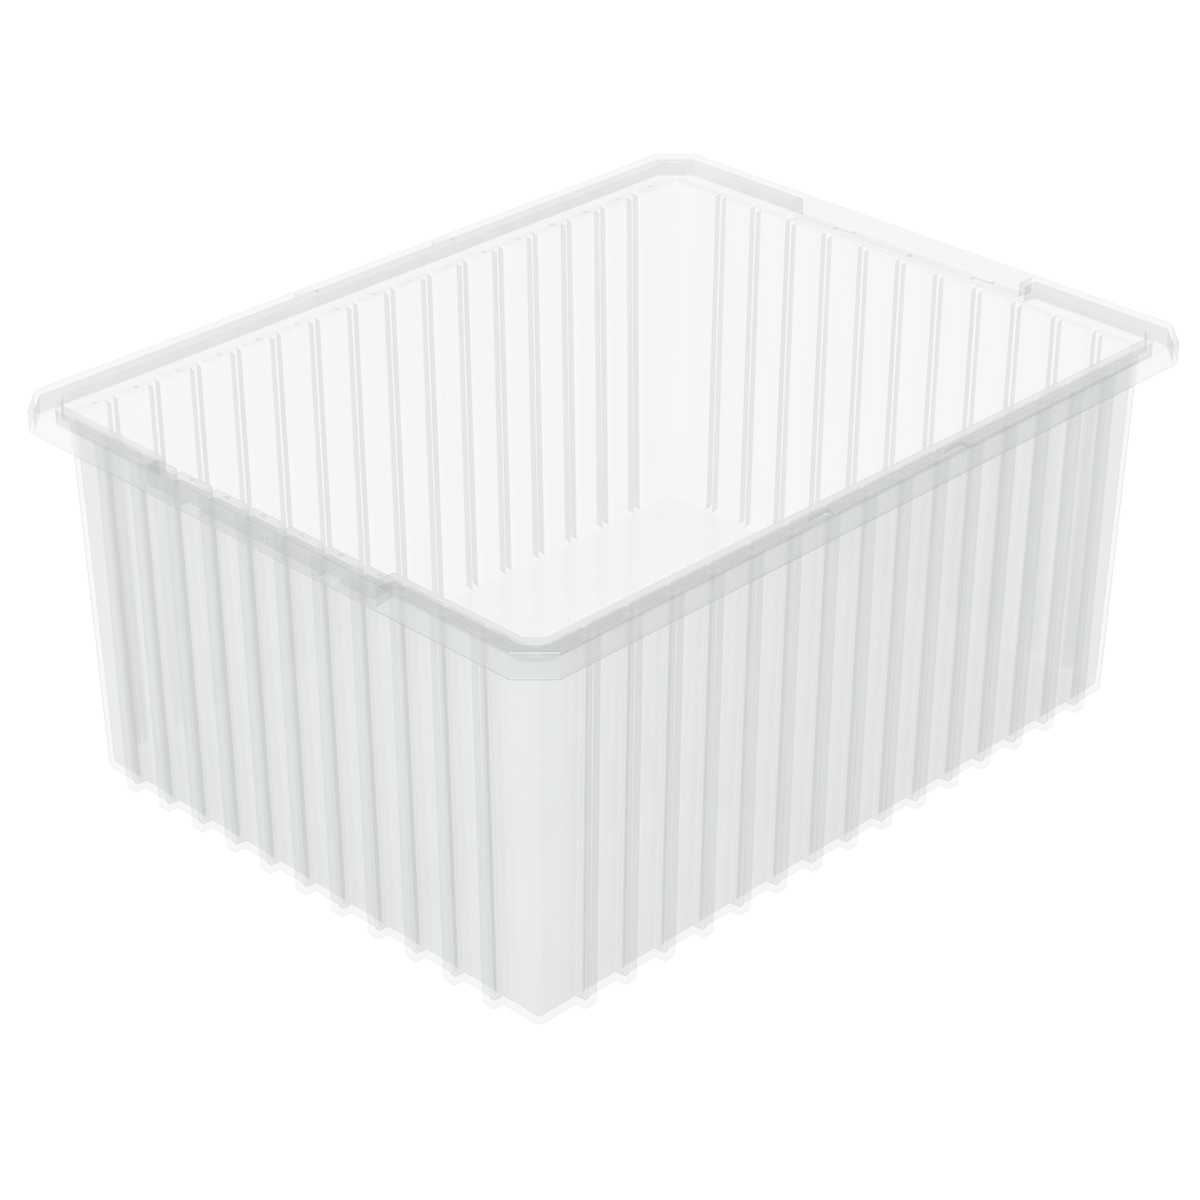 Akro-Grid Dividable Box 22-3/8 x 17-3/8 x 10, Clear (33220SCLAR).  This item sold in carton quantities of 2.